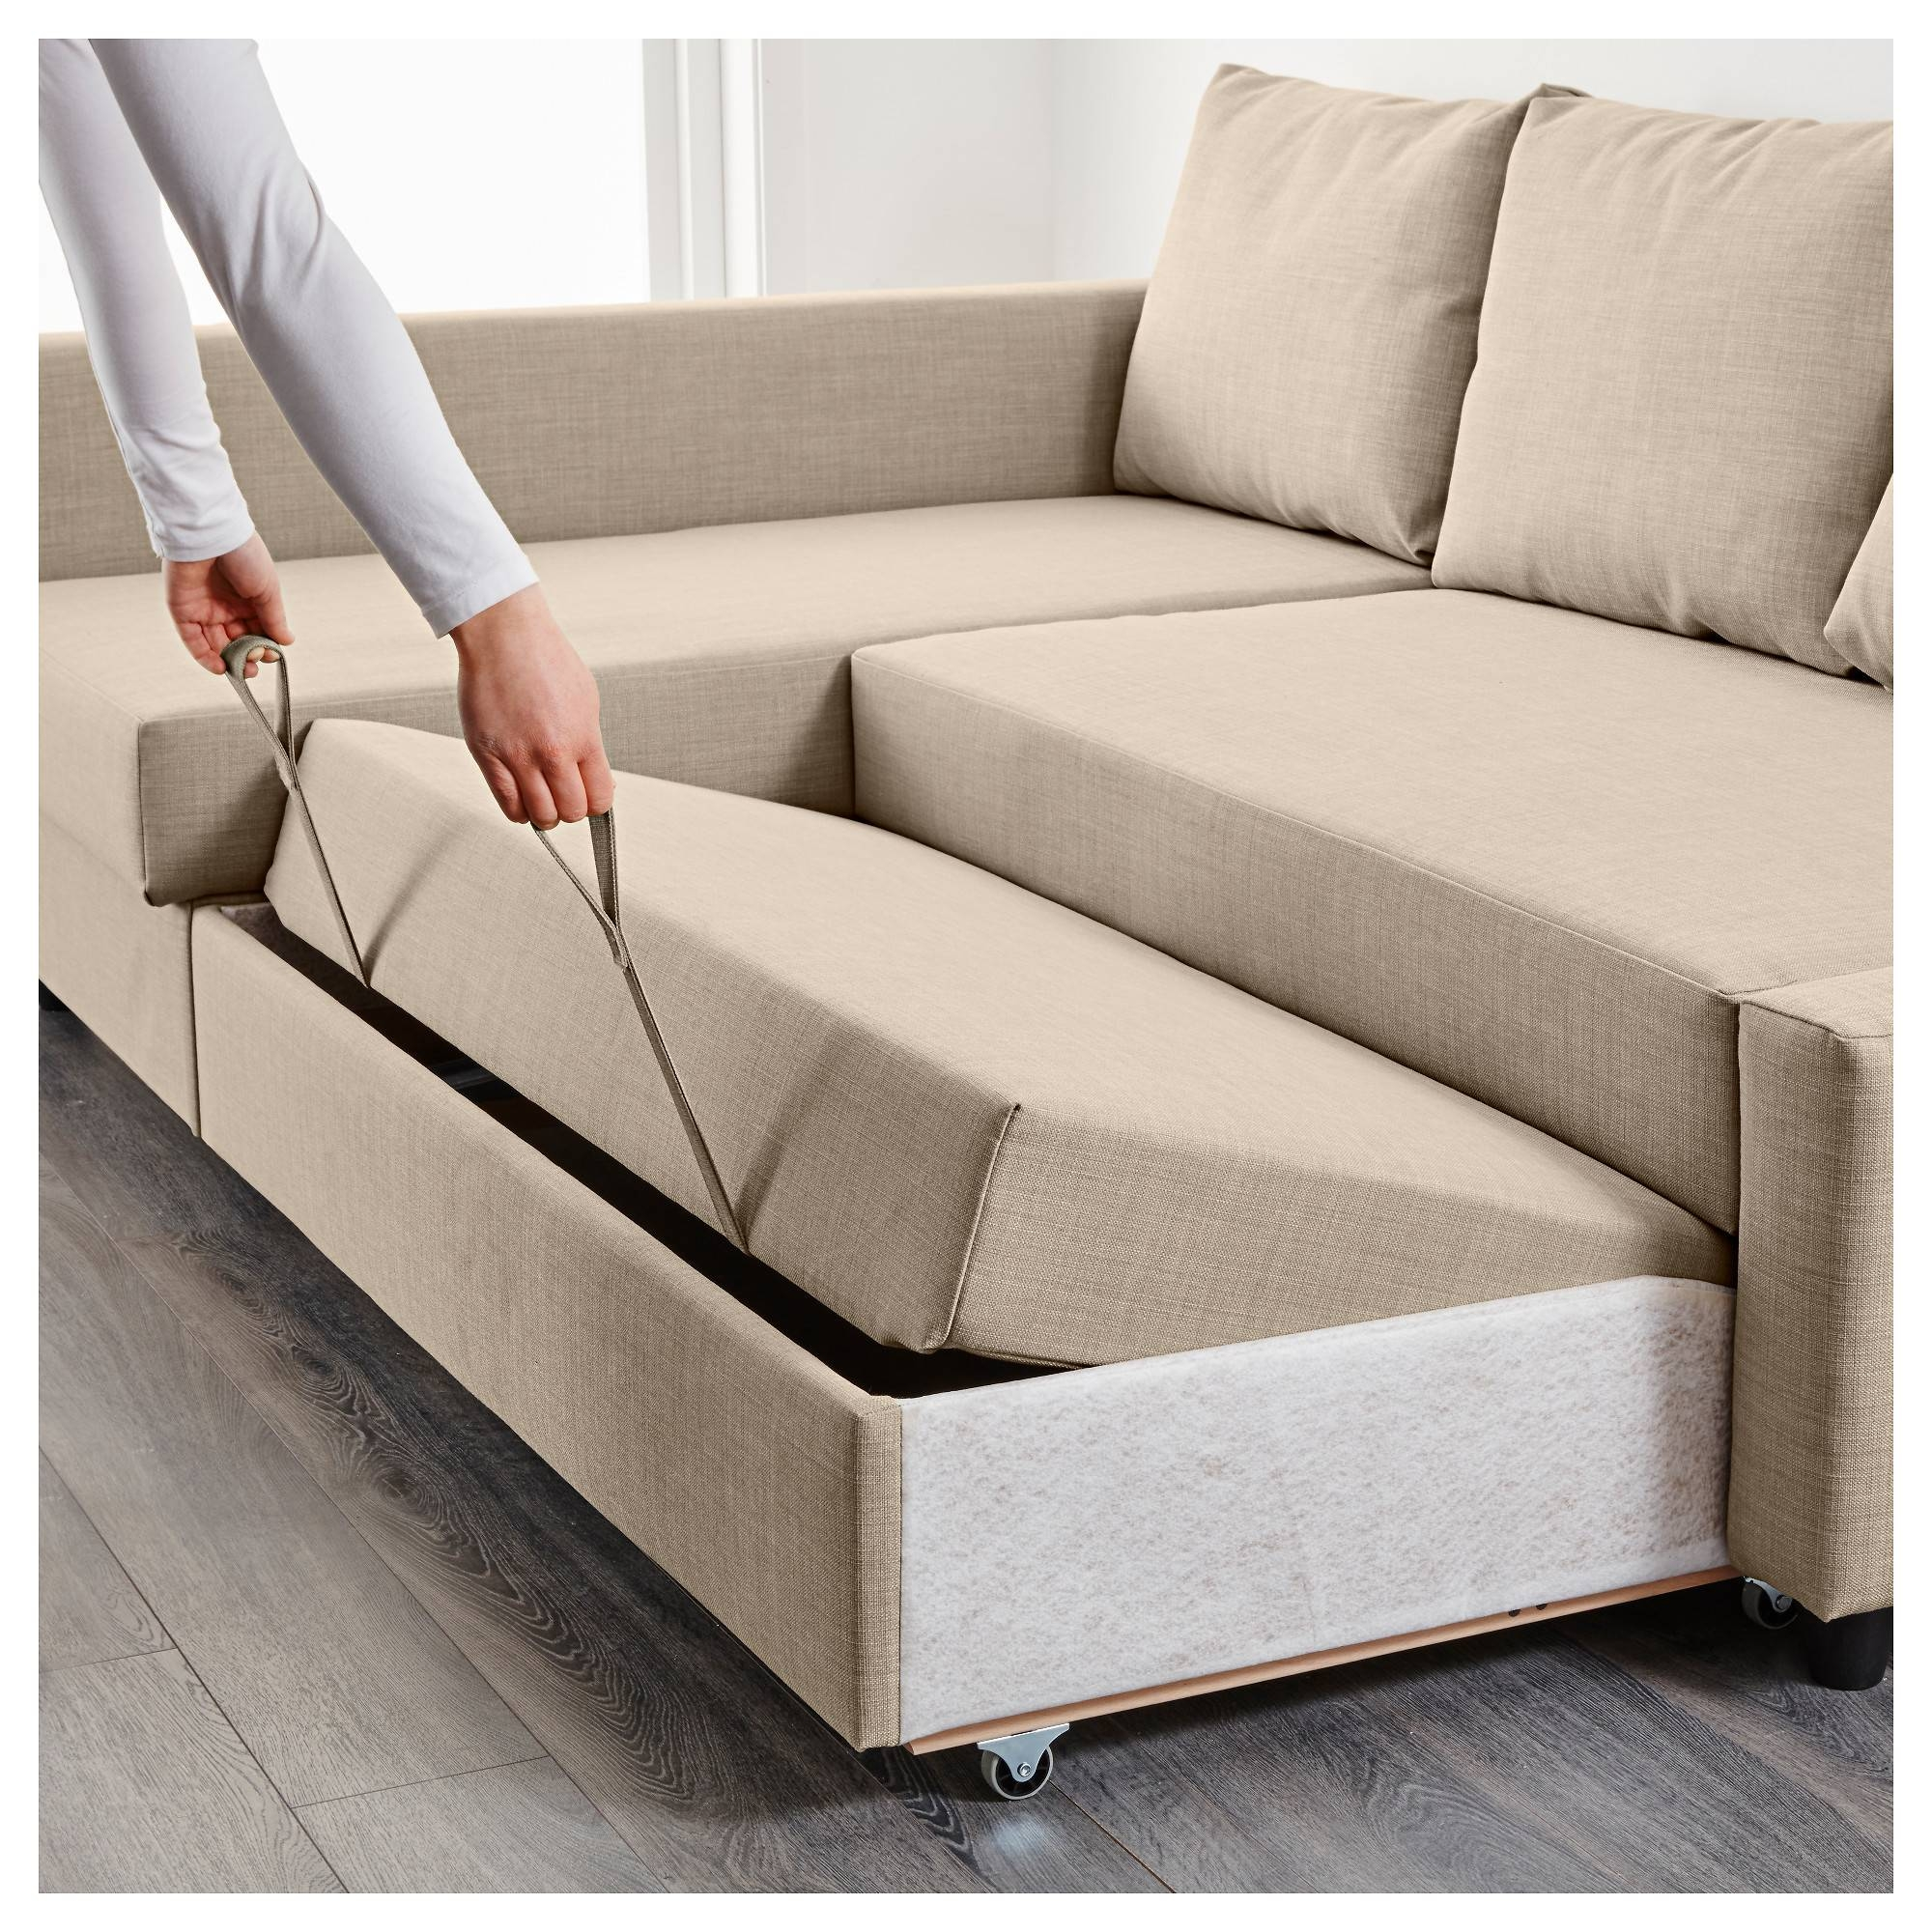 Friheten Corner Sofa-Bed With Storage Skiftebo Beige - Ikea intended for Storage Sofas Ikea (Image 3 of 25)